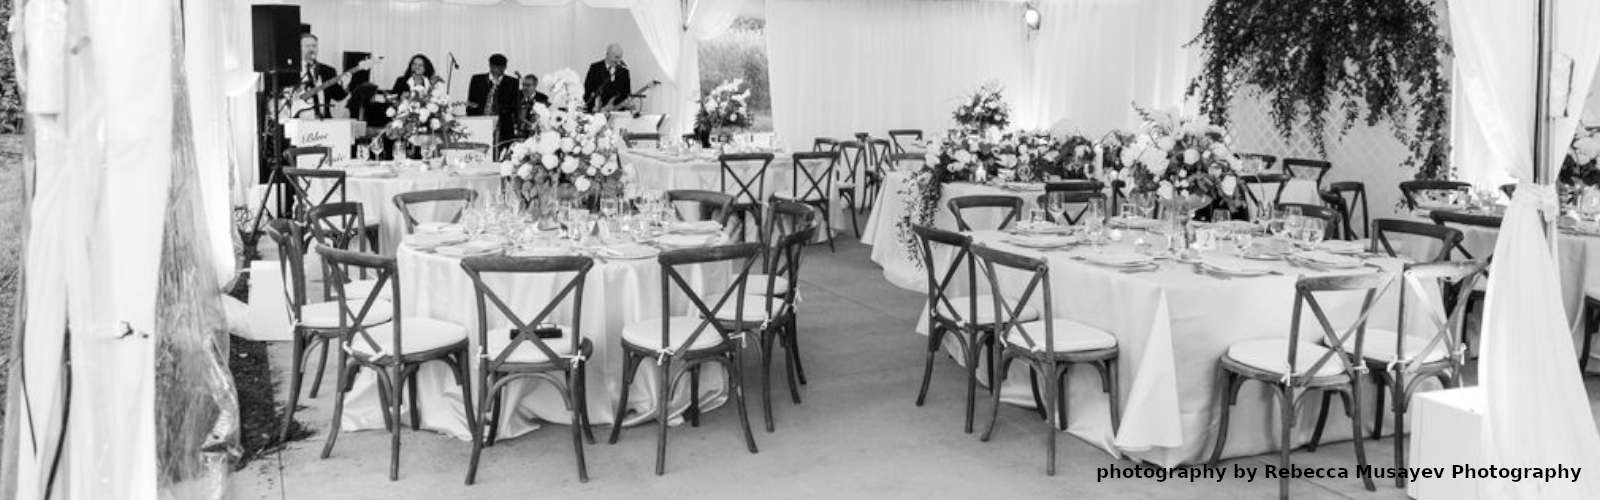 Table rentals in Middle Tennessee